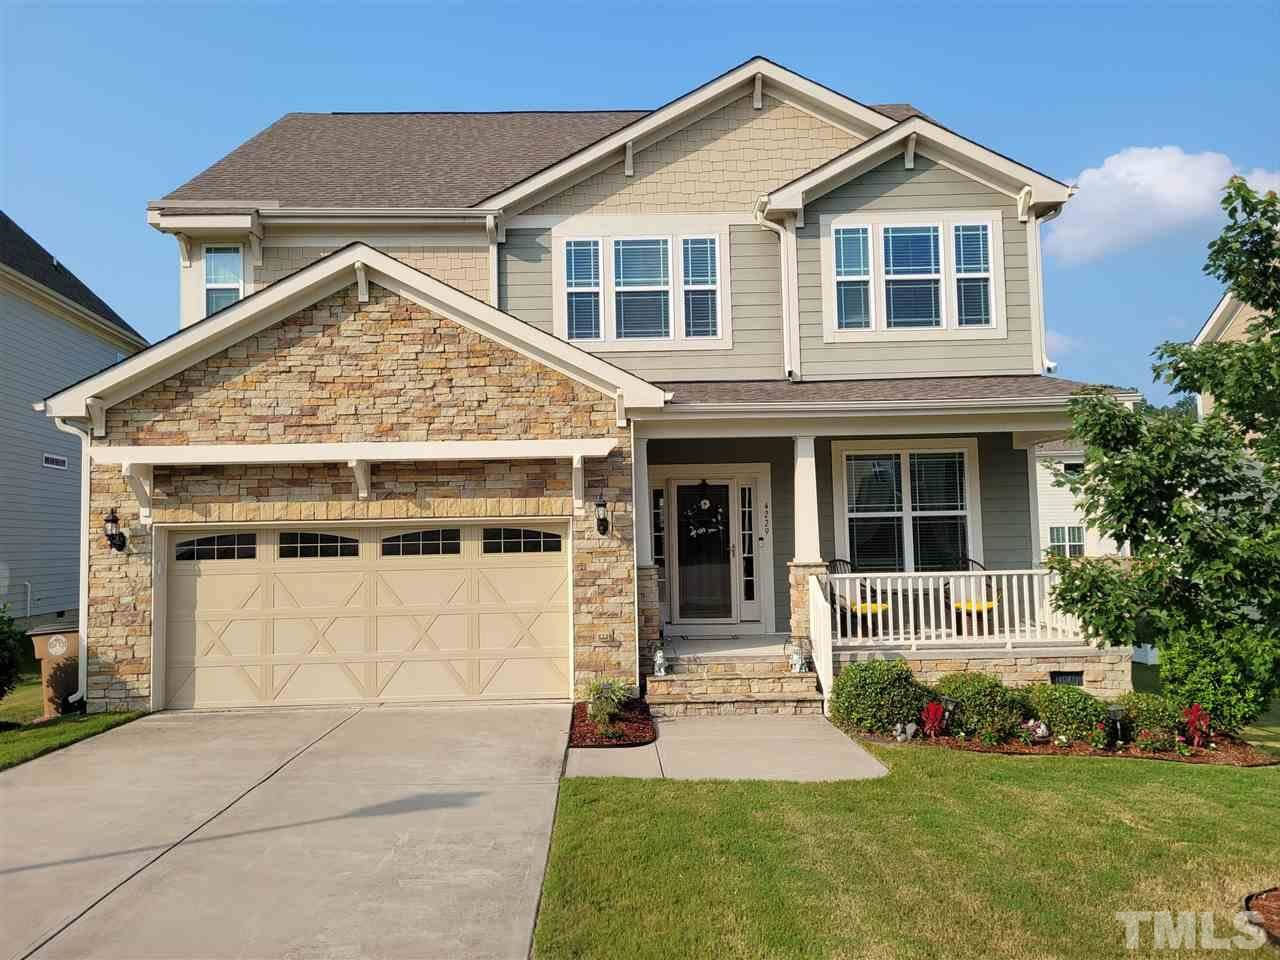 Photo of 4229 Sunset Falls Drive, Wake Forest, NC 27587-4312 (MLS # 2399234)